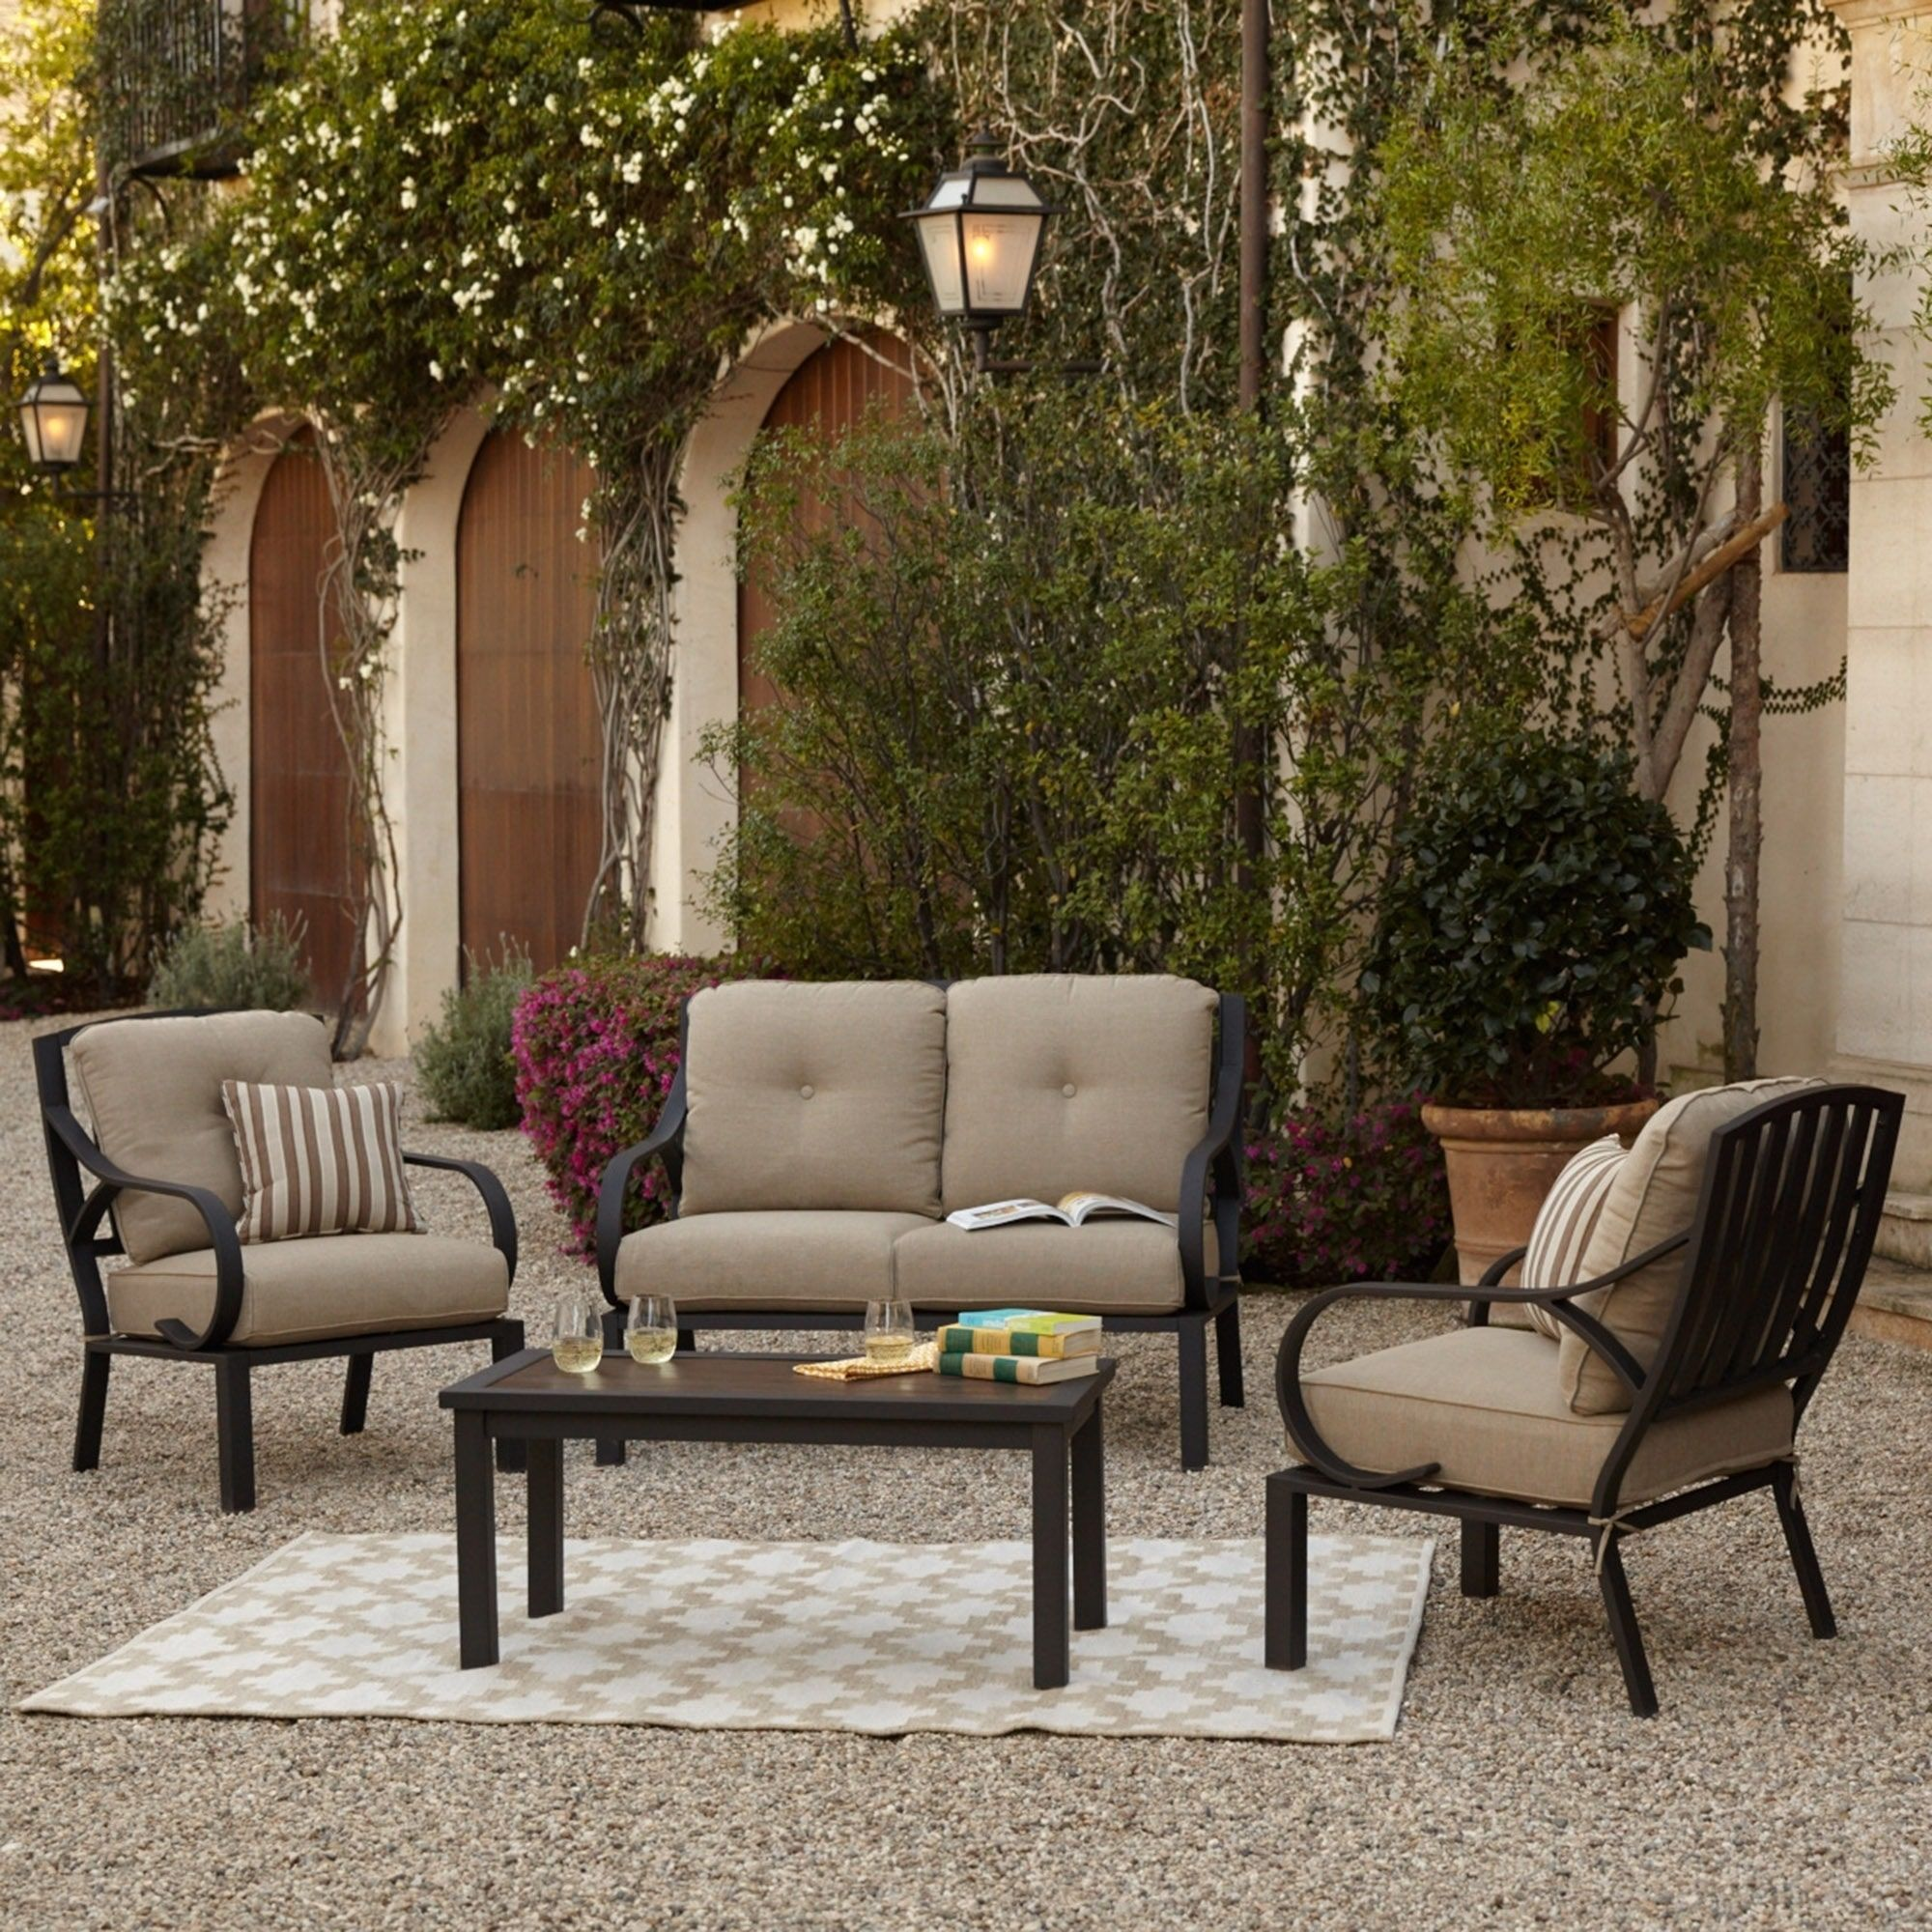 Royal norman outdoor piece seating furniture set with loveseat